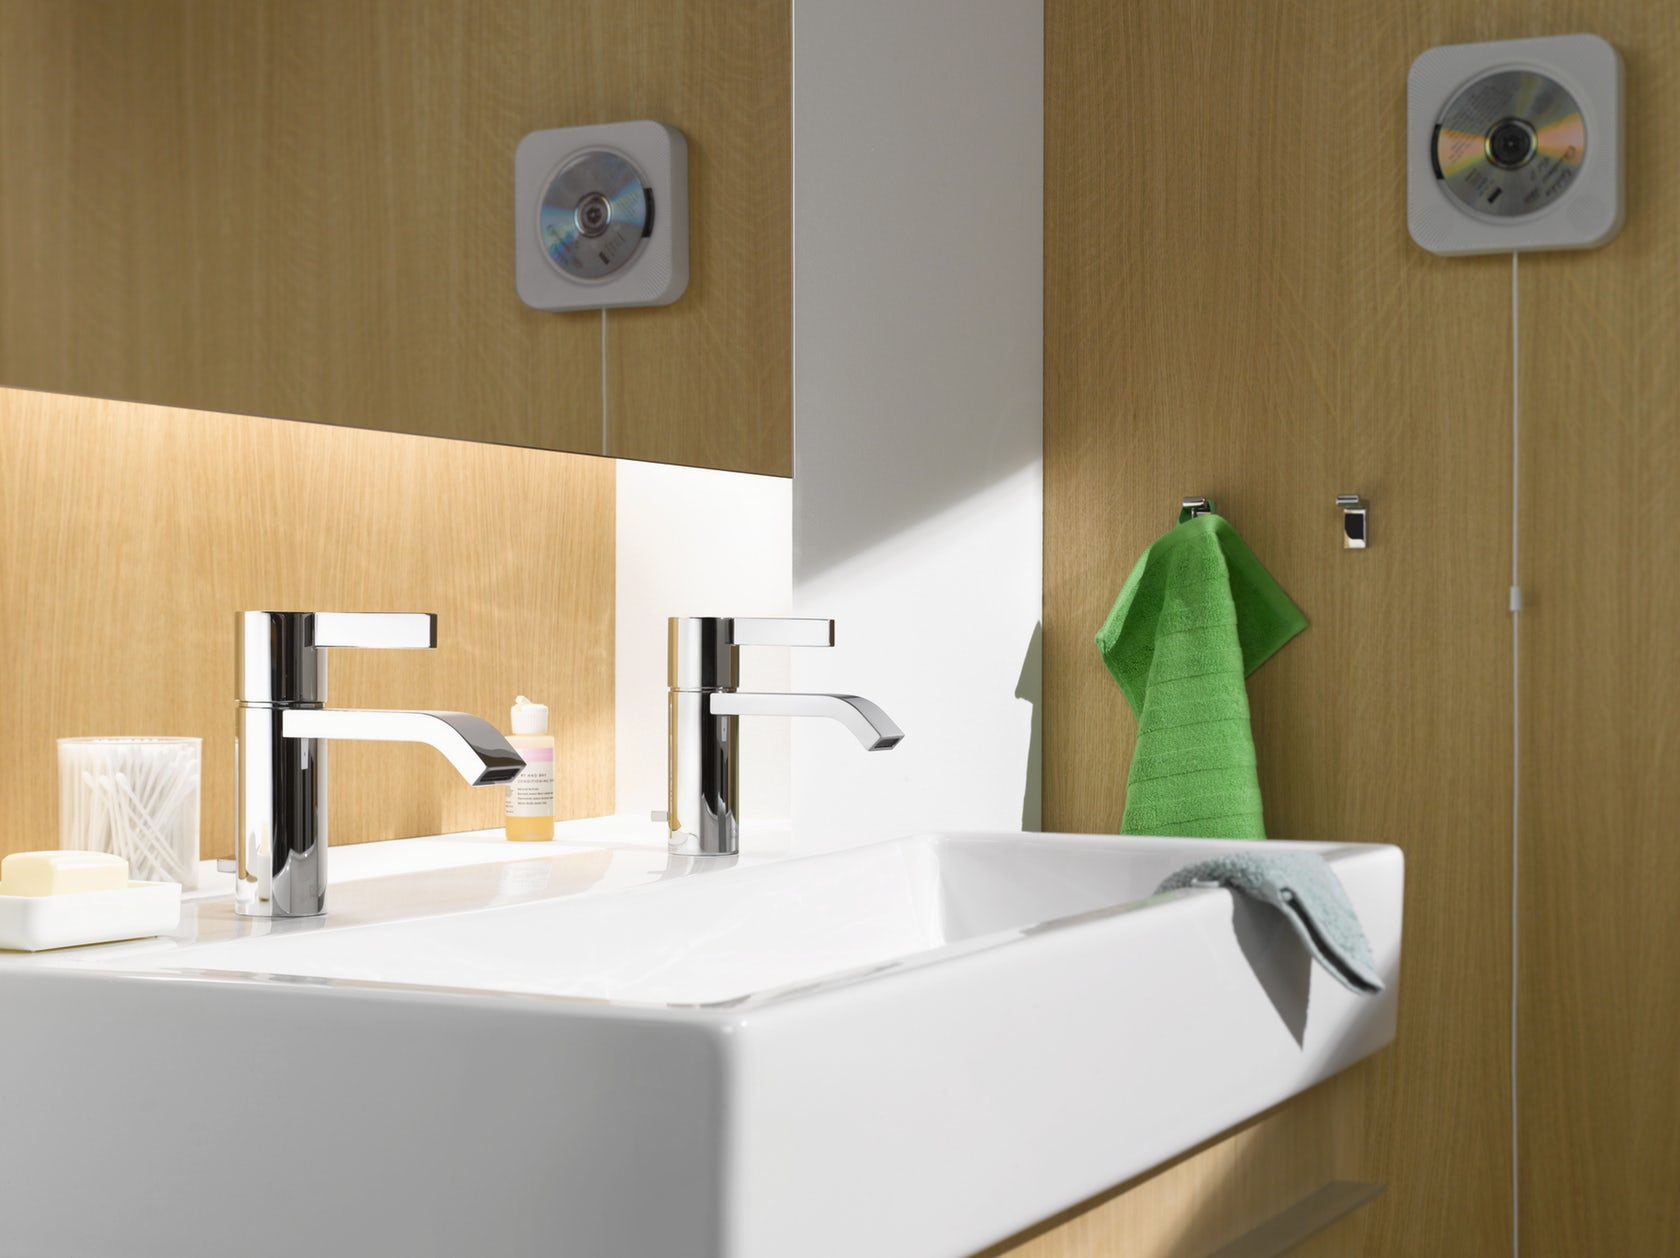 Dornbracht Bathroom Faucets | Dornbracht Kitchen Faucet | German Faucets